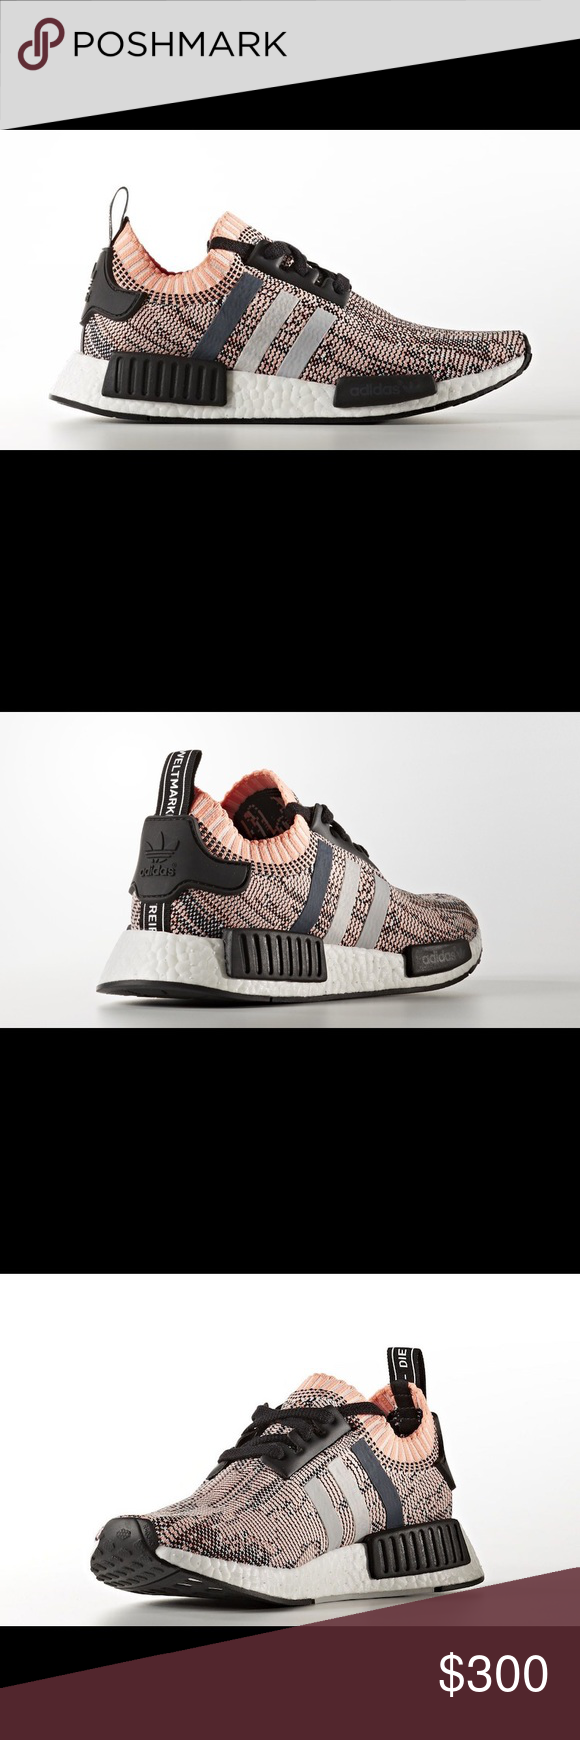 4430a4757 Adidas NMD R1 Primeknit Sun Glow Pink BB2361 Shoes Up for sale is a brand  new